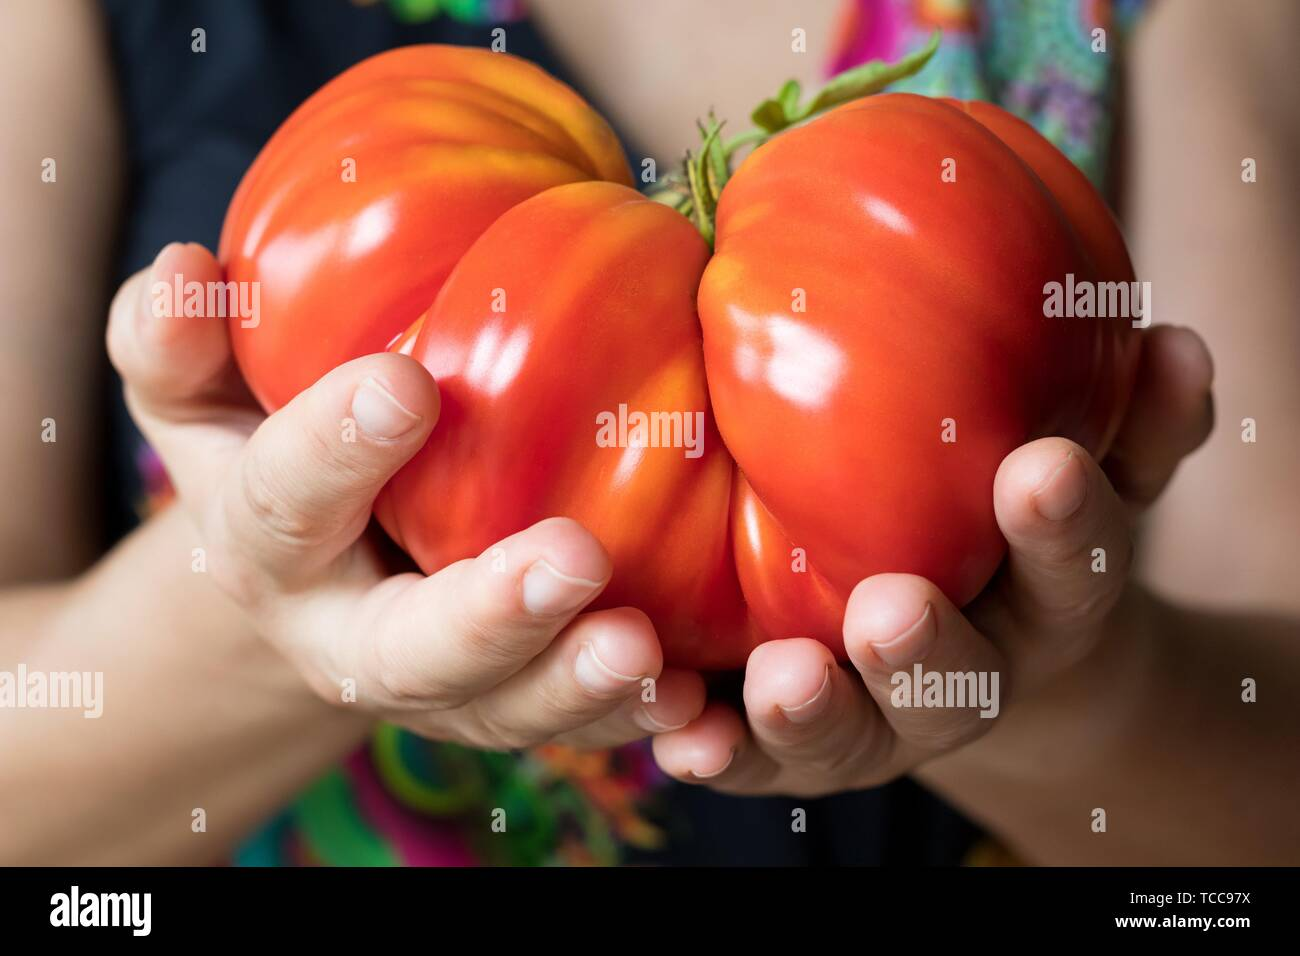 Hands holding and offering a giant Zapotec pleated heirloom tomato. - Stock Image